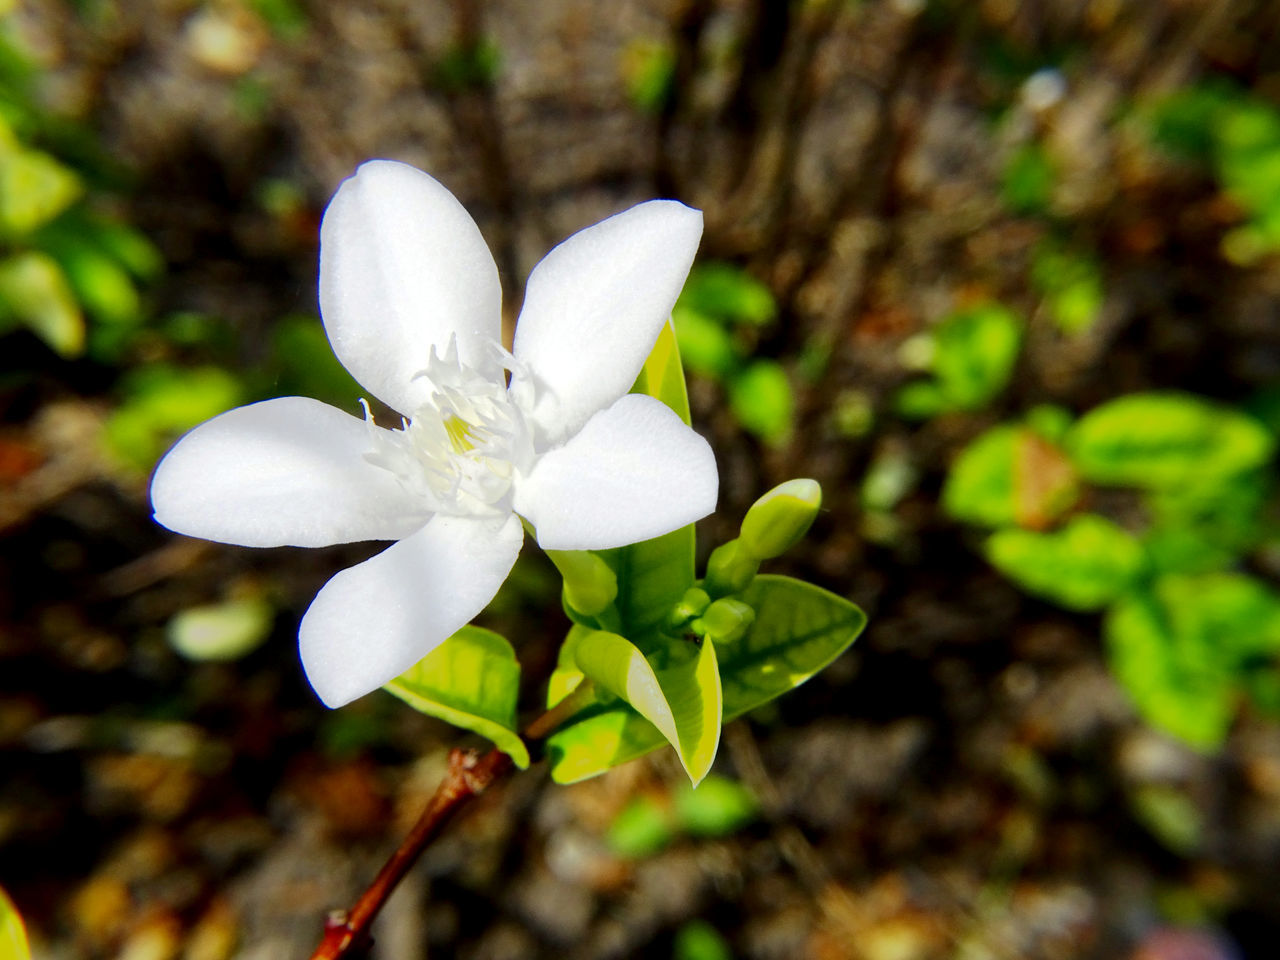 Beauty In Nature Blooming Close-up Day Flower Flower Head Fragility Freshness Growth Jasmine Jasmine Flower Jasmine Flowers Leaf Nature No People Outdoors Petal Plant